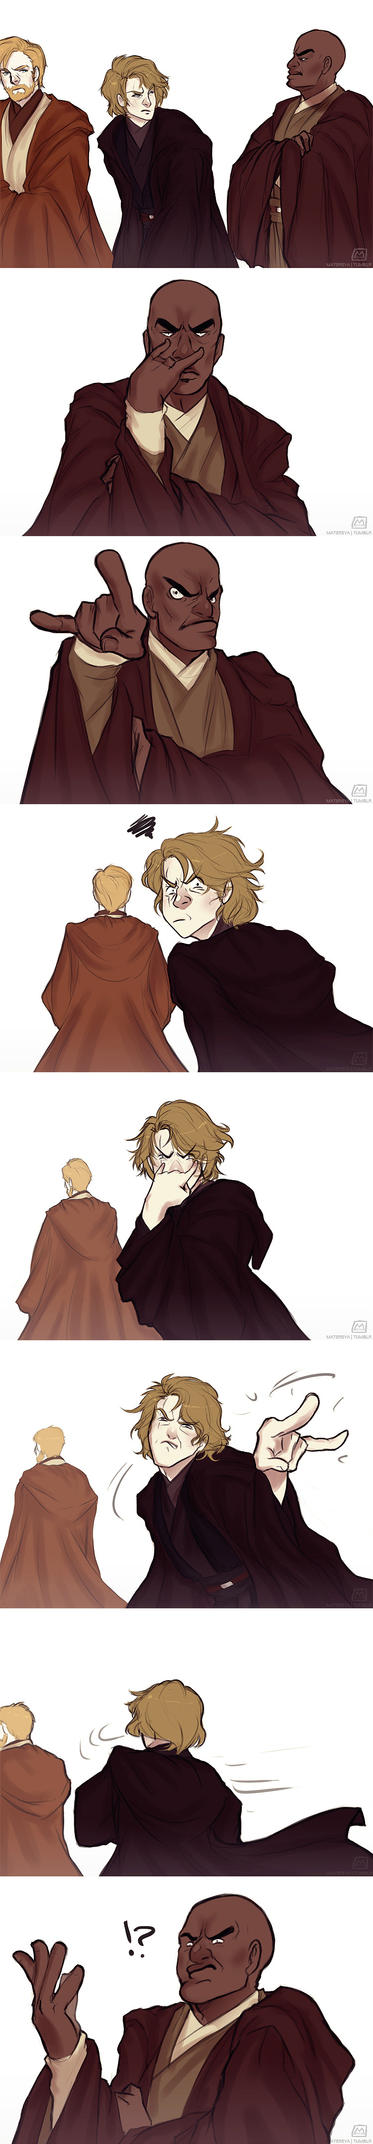 I've got my eyes on you, Skywalker by Matereya